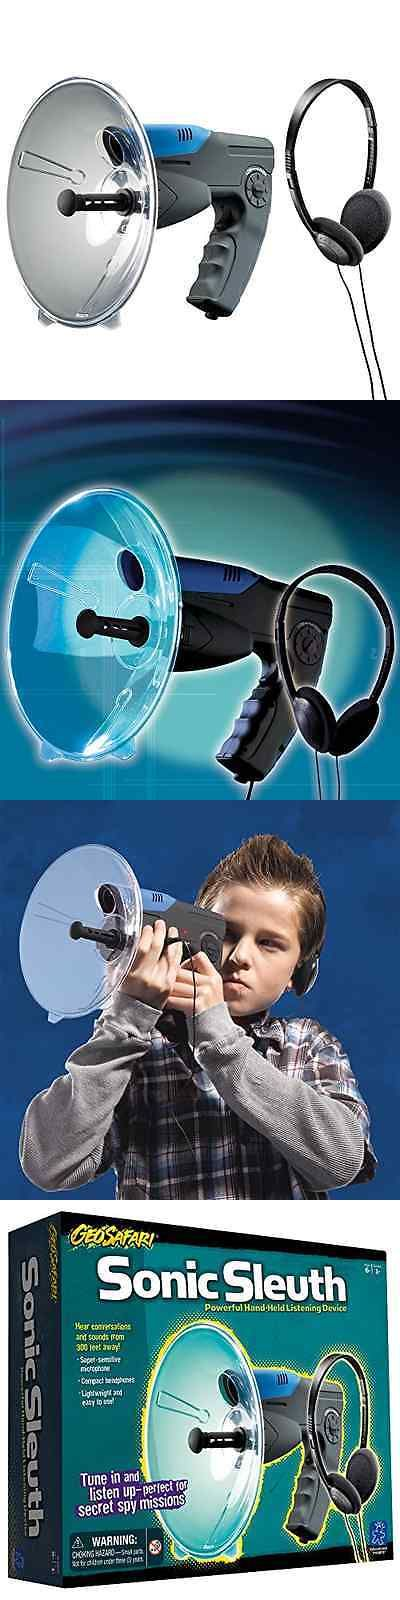 Other Educational Toys 2518: Parabolic Microphone Spy Listening Device Bionic Ear Sound Amplifier Gadget 300M -> BUY IT NOW ONLY: $45.78 on eBay!